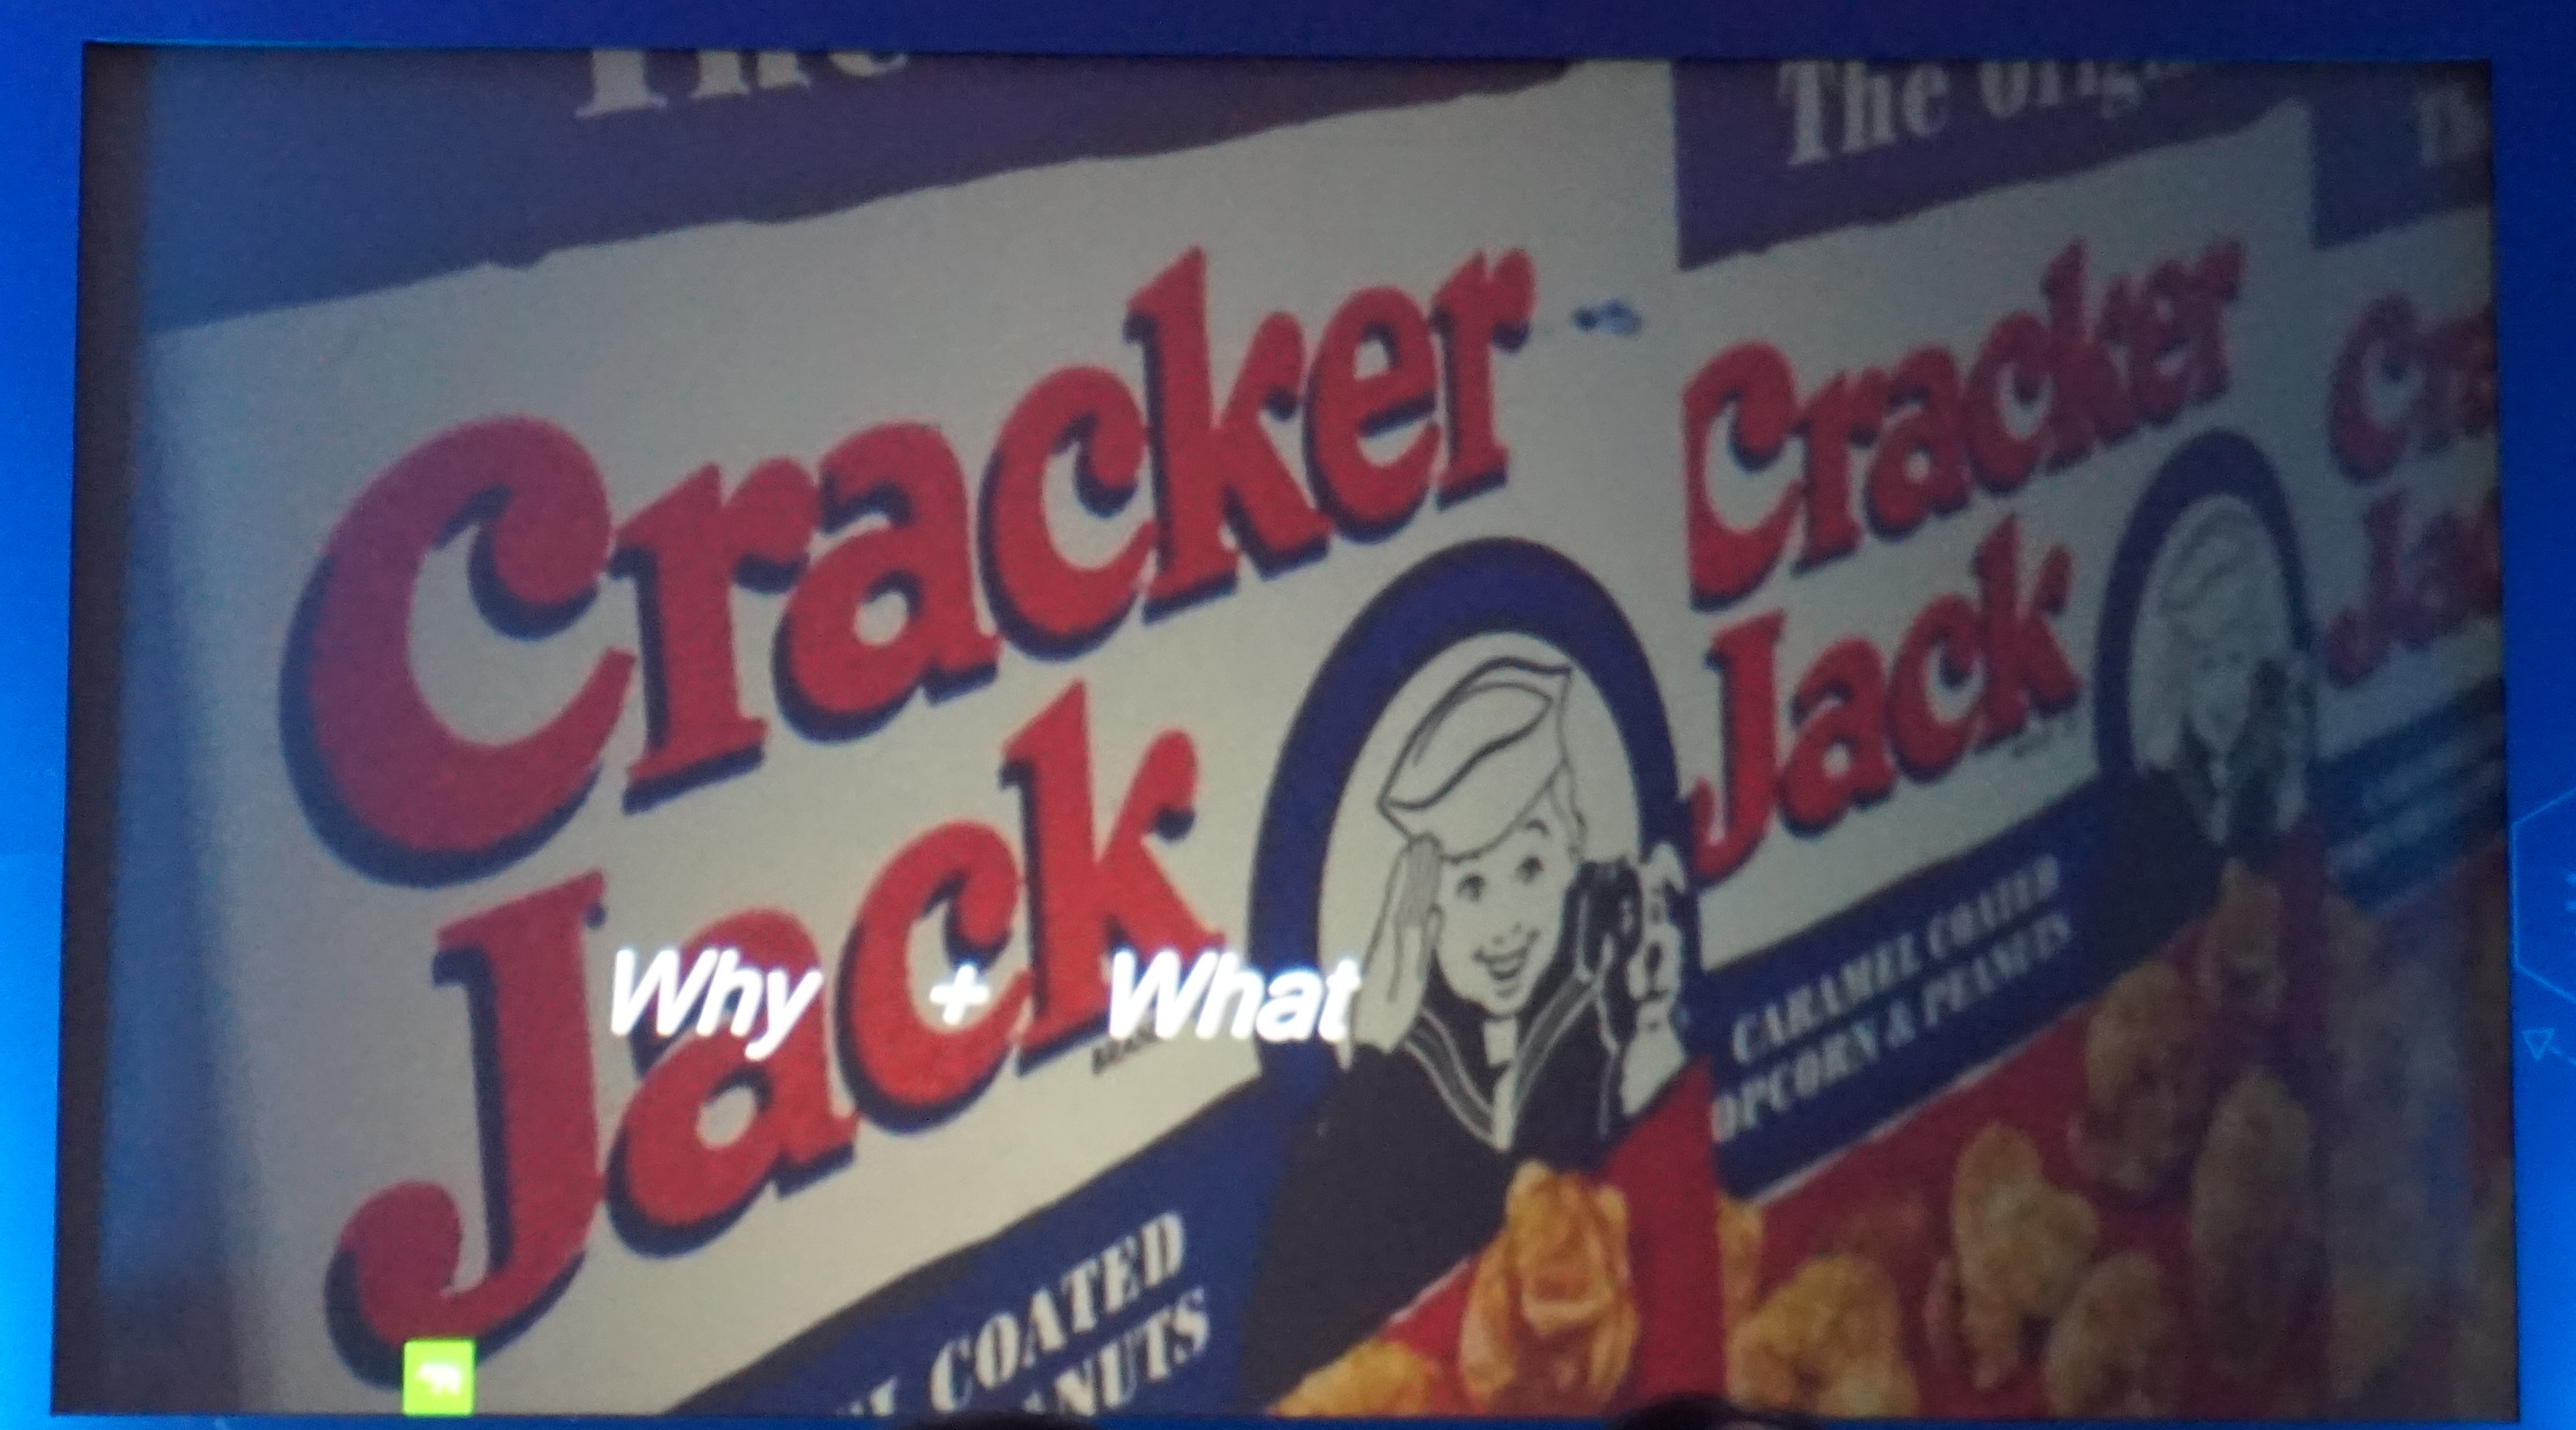 Cracker-Jack-Qualcomm